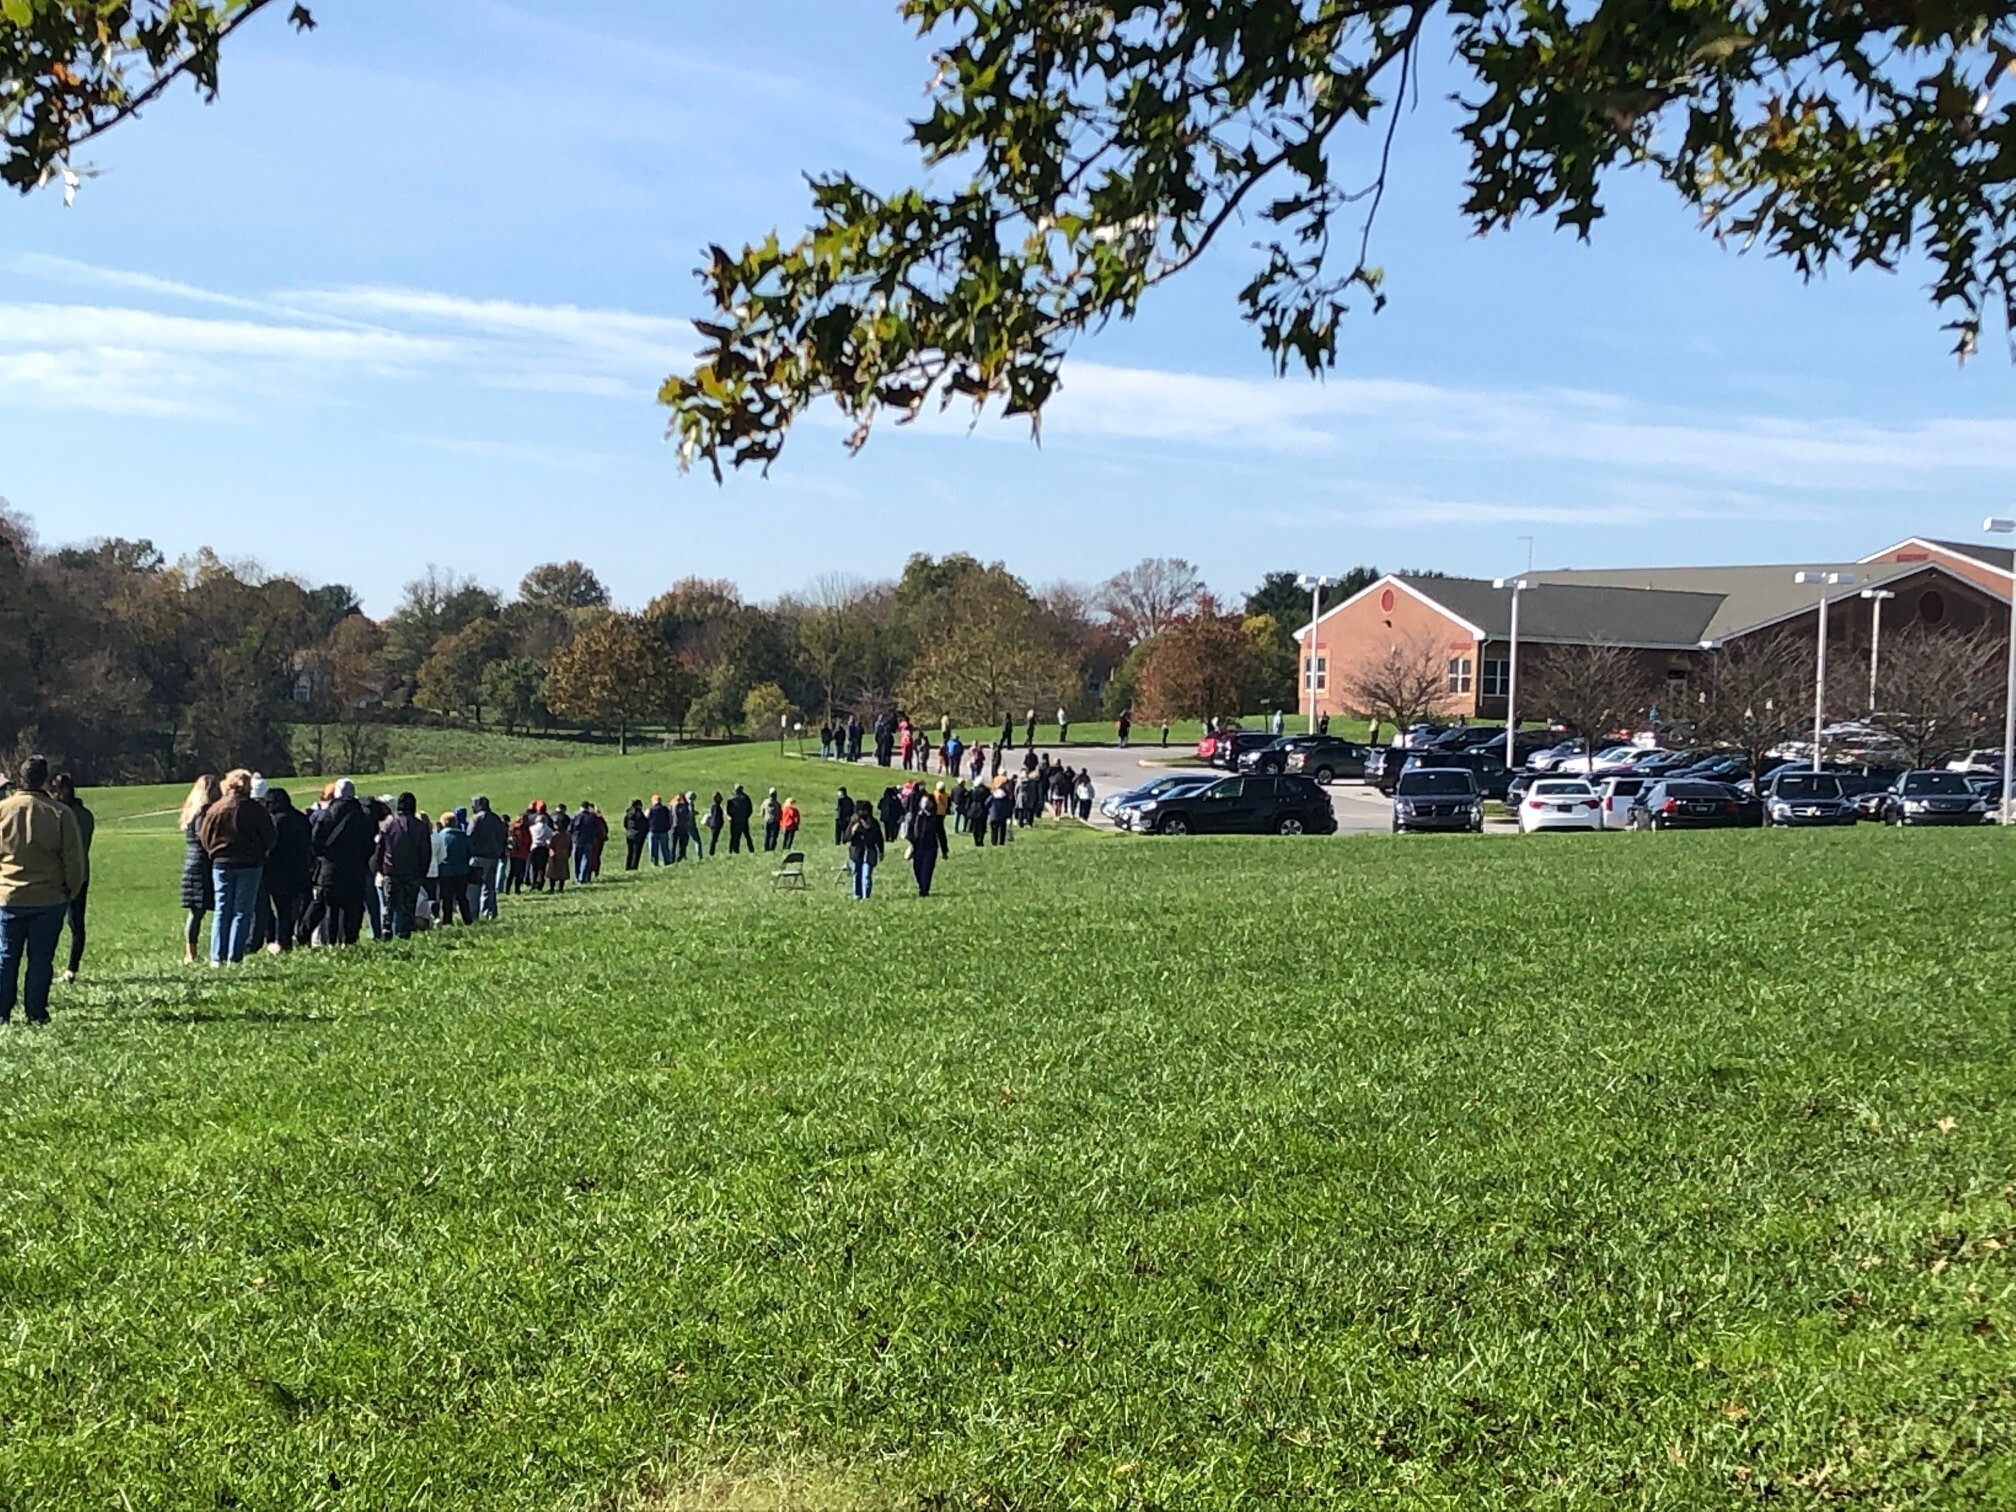 The line of voters kept growing all morning at North Star Elementary School in Hockessin